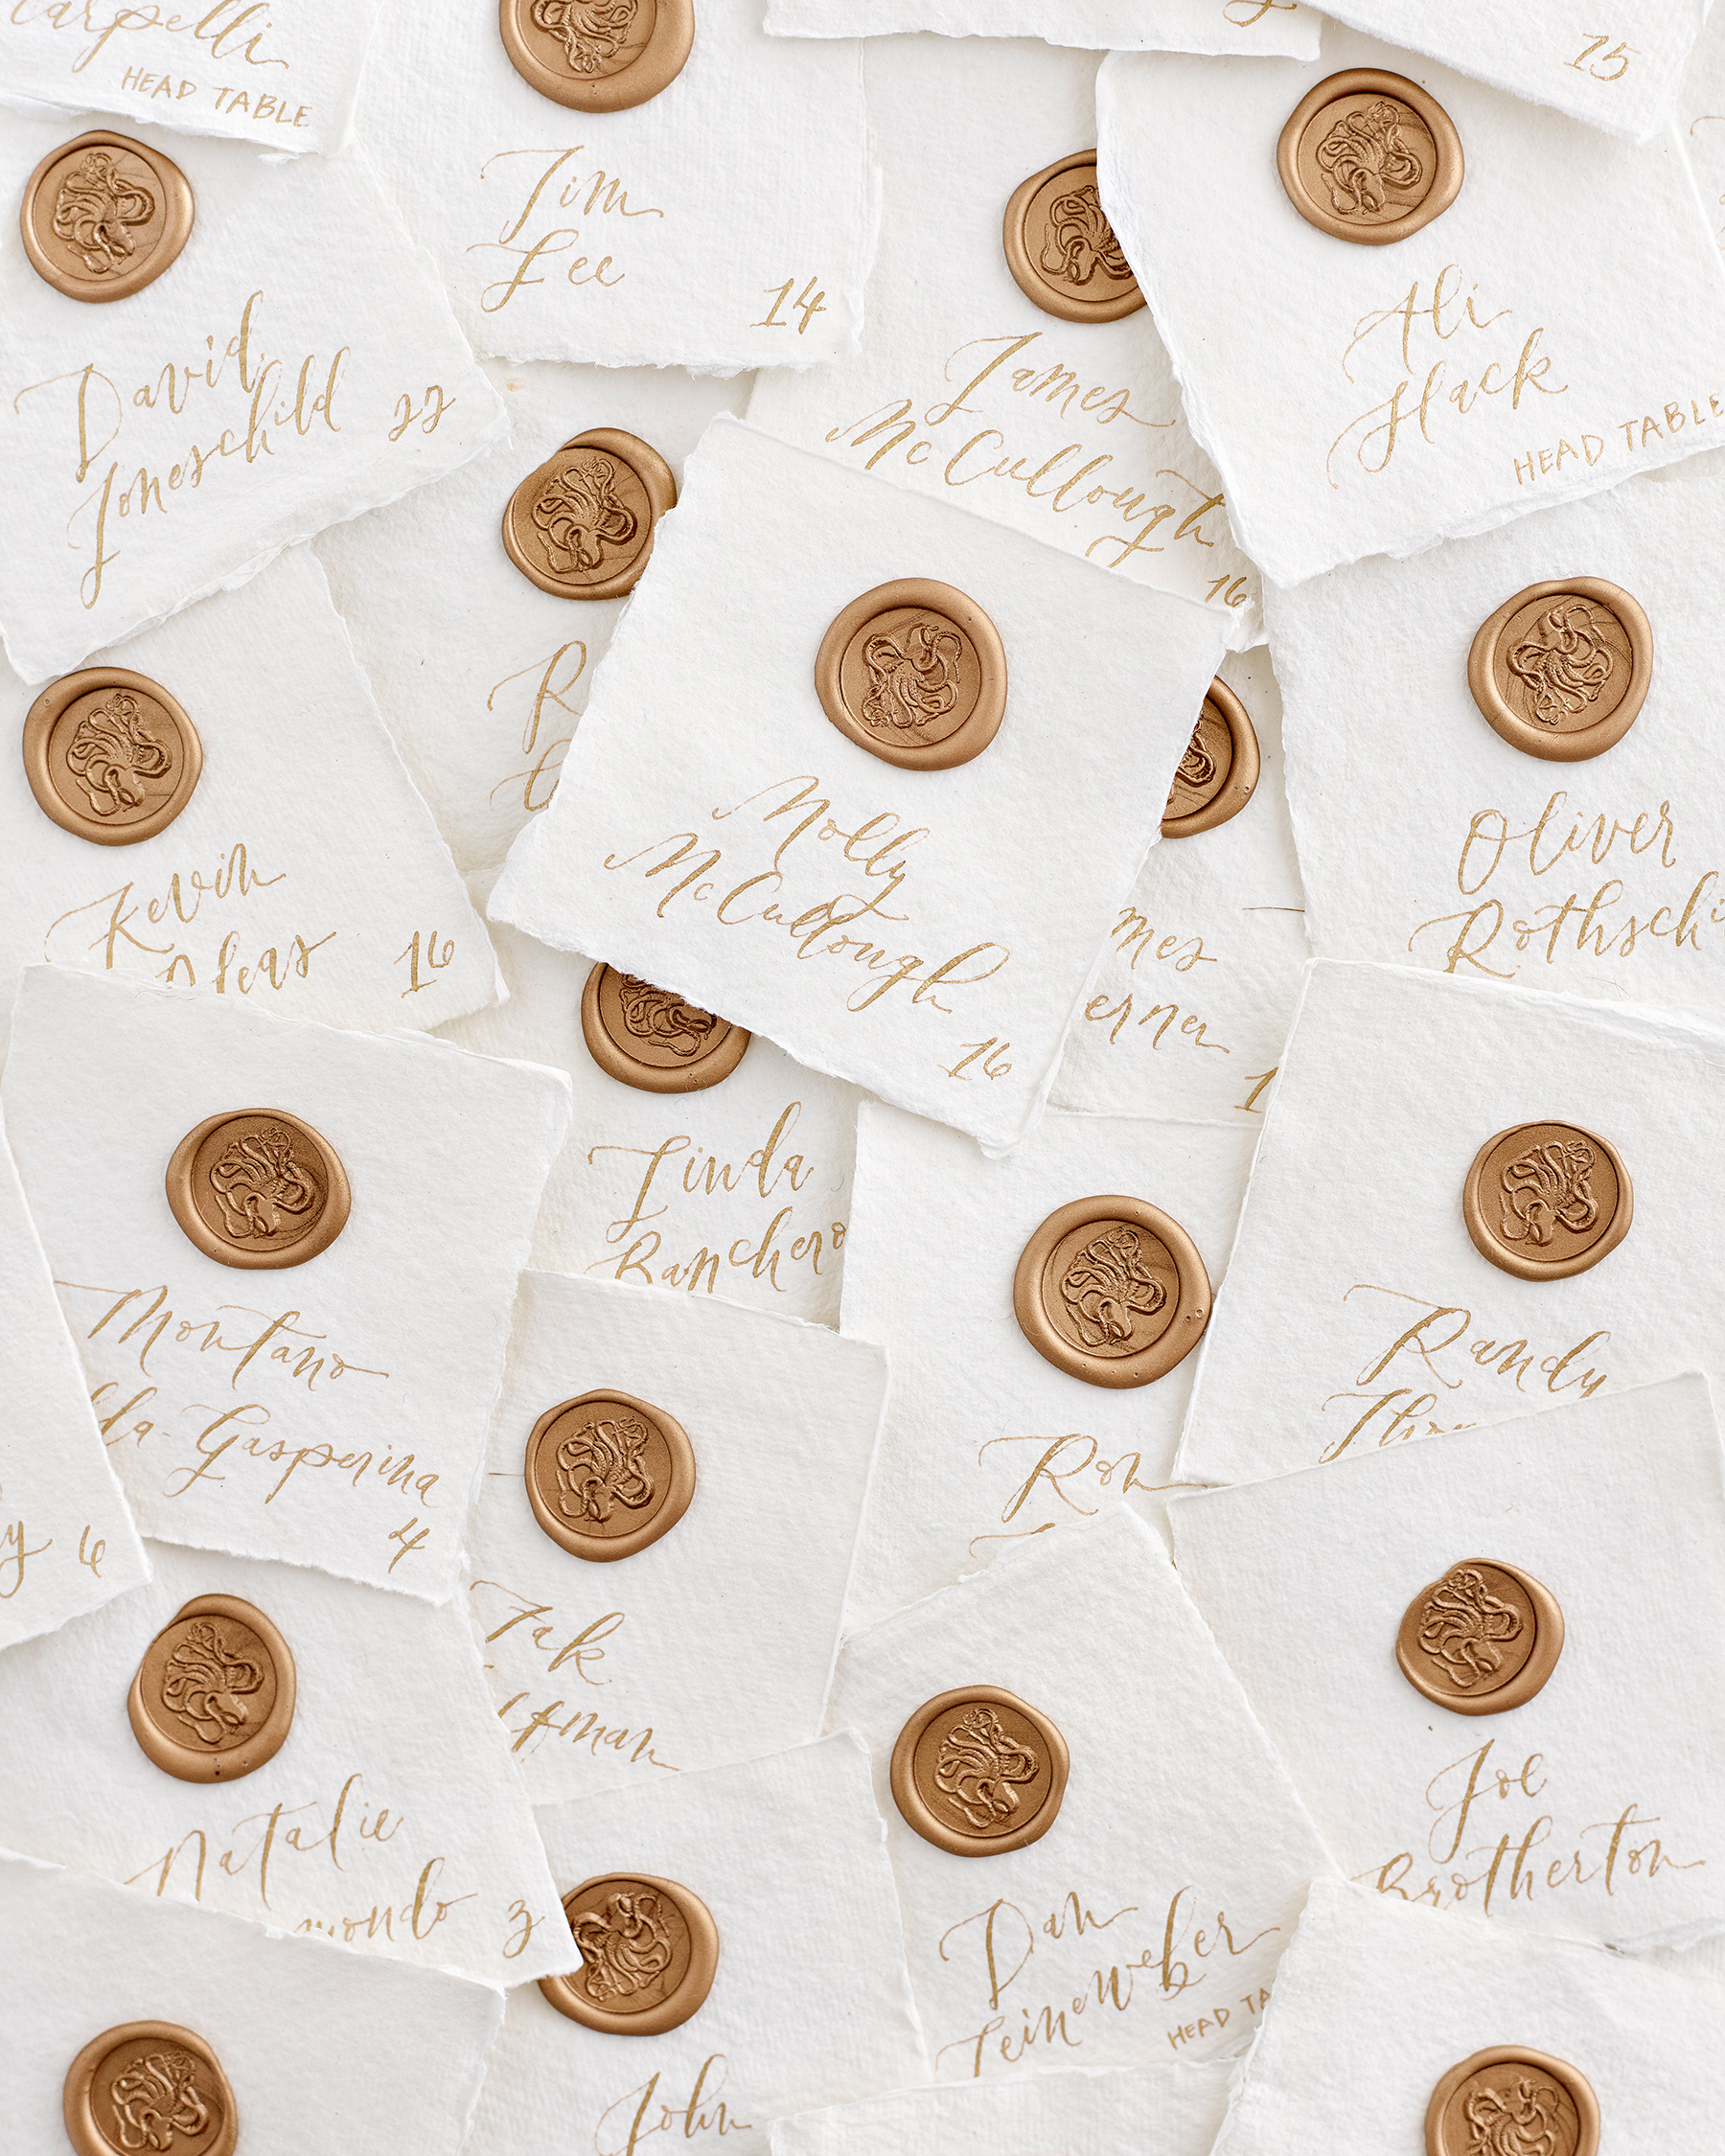 kaitlin dan wedding escort cards